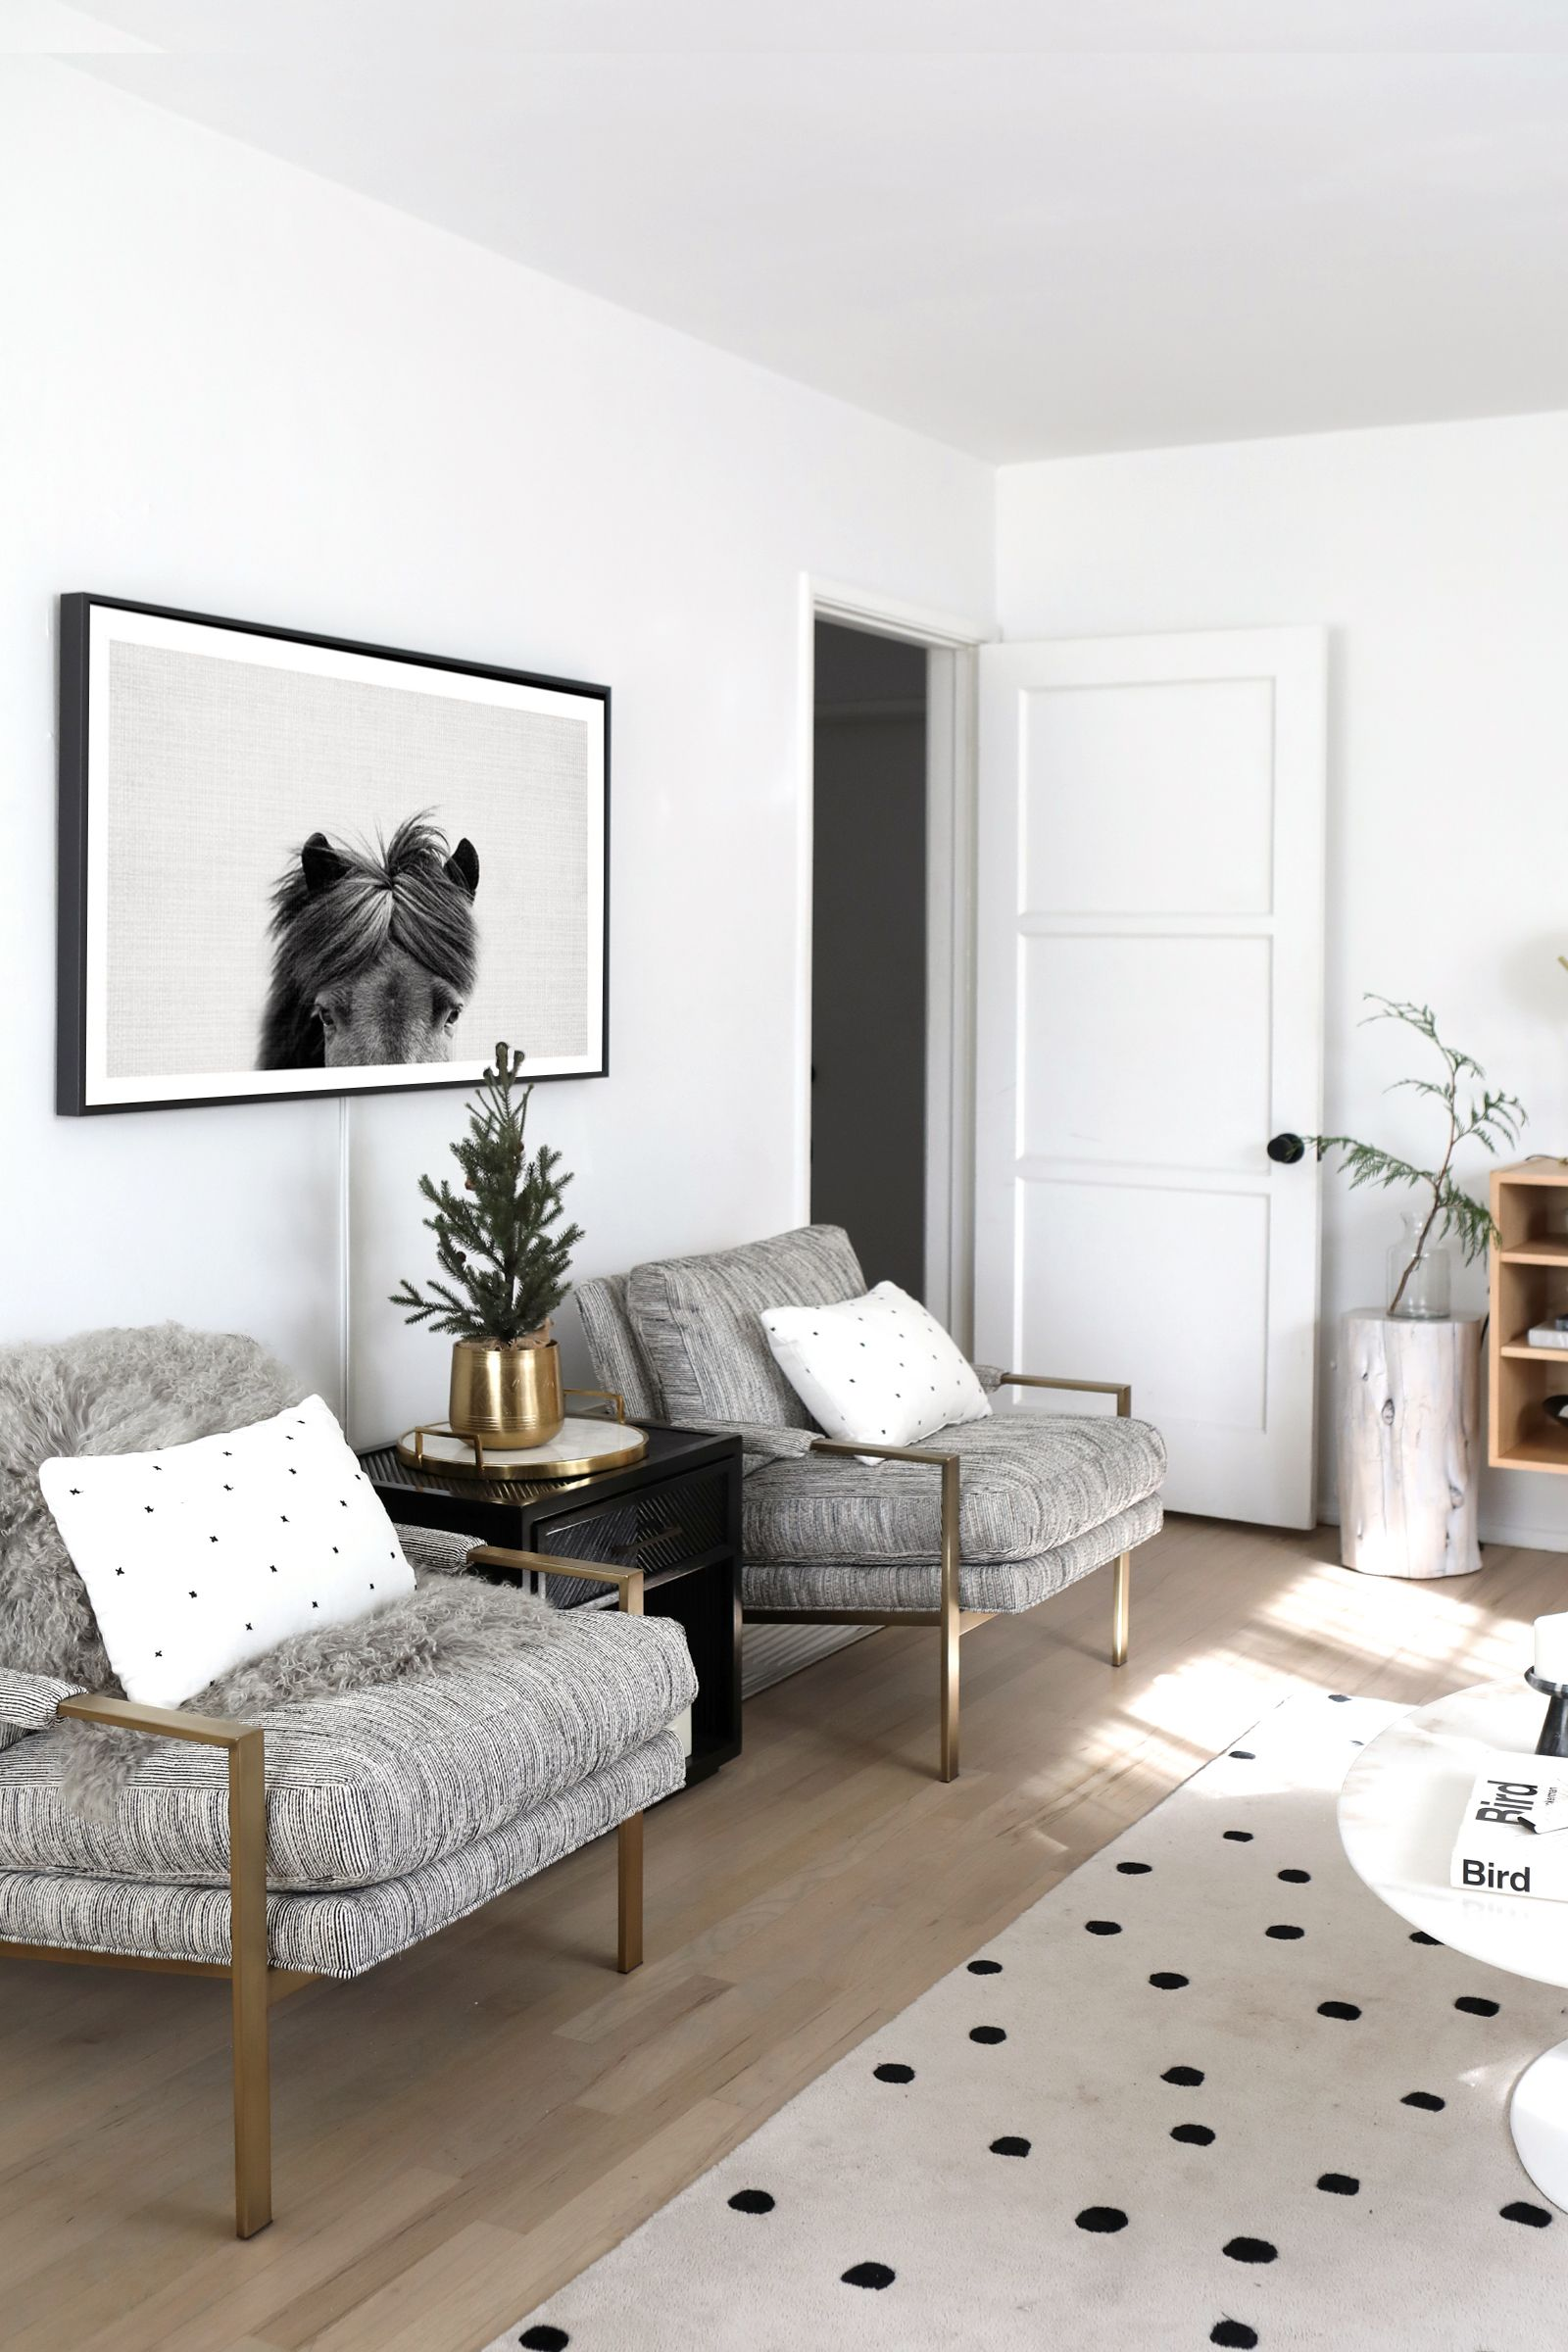 Creating Sanctuary at Home During the Holidays | Neutral, Room and ...